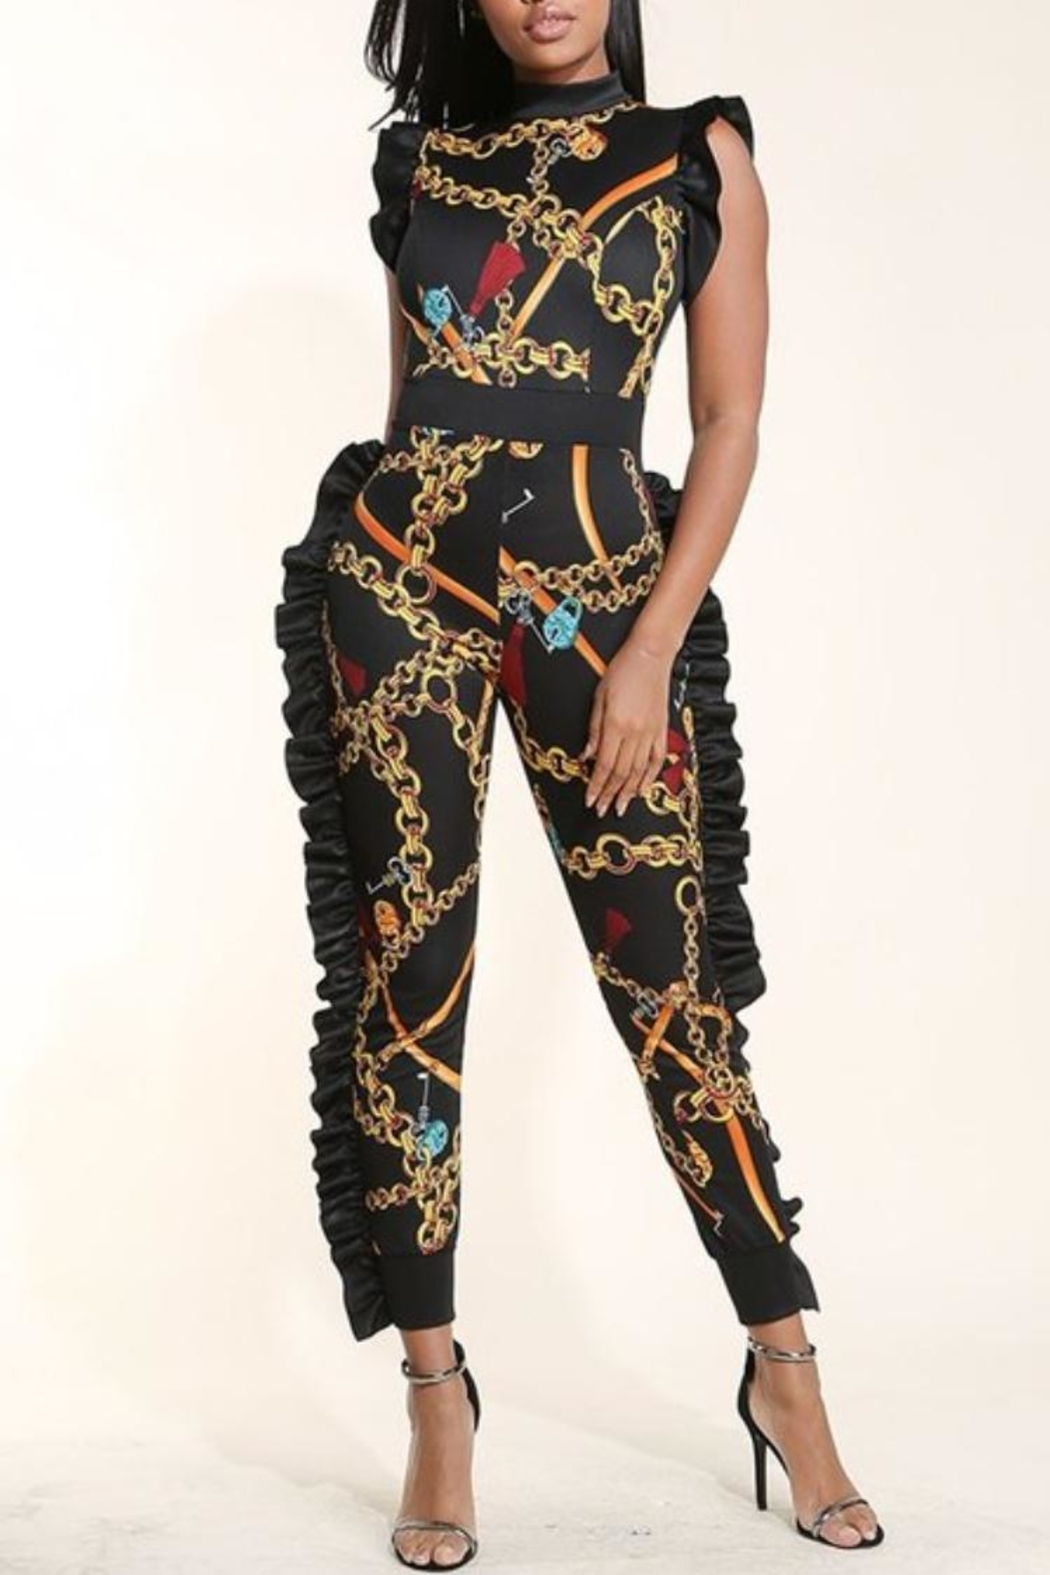 99e13bf1ed K too Multi Ruffled Jumpsuit from Michigan by Javahs Fashion Cafe ...